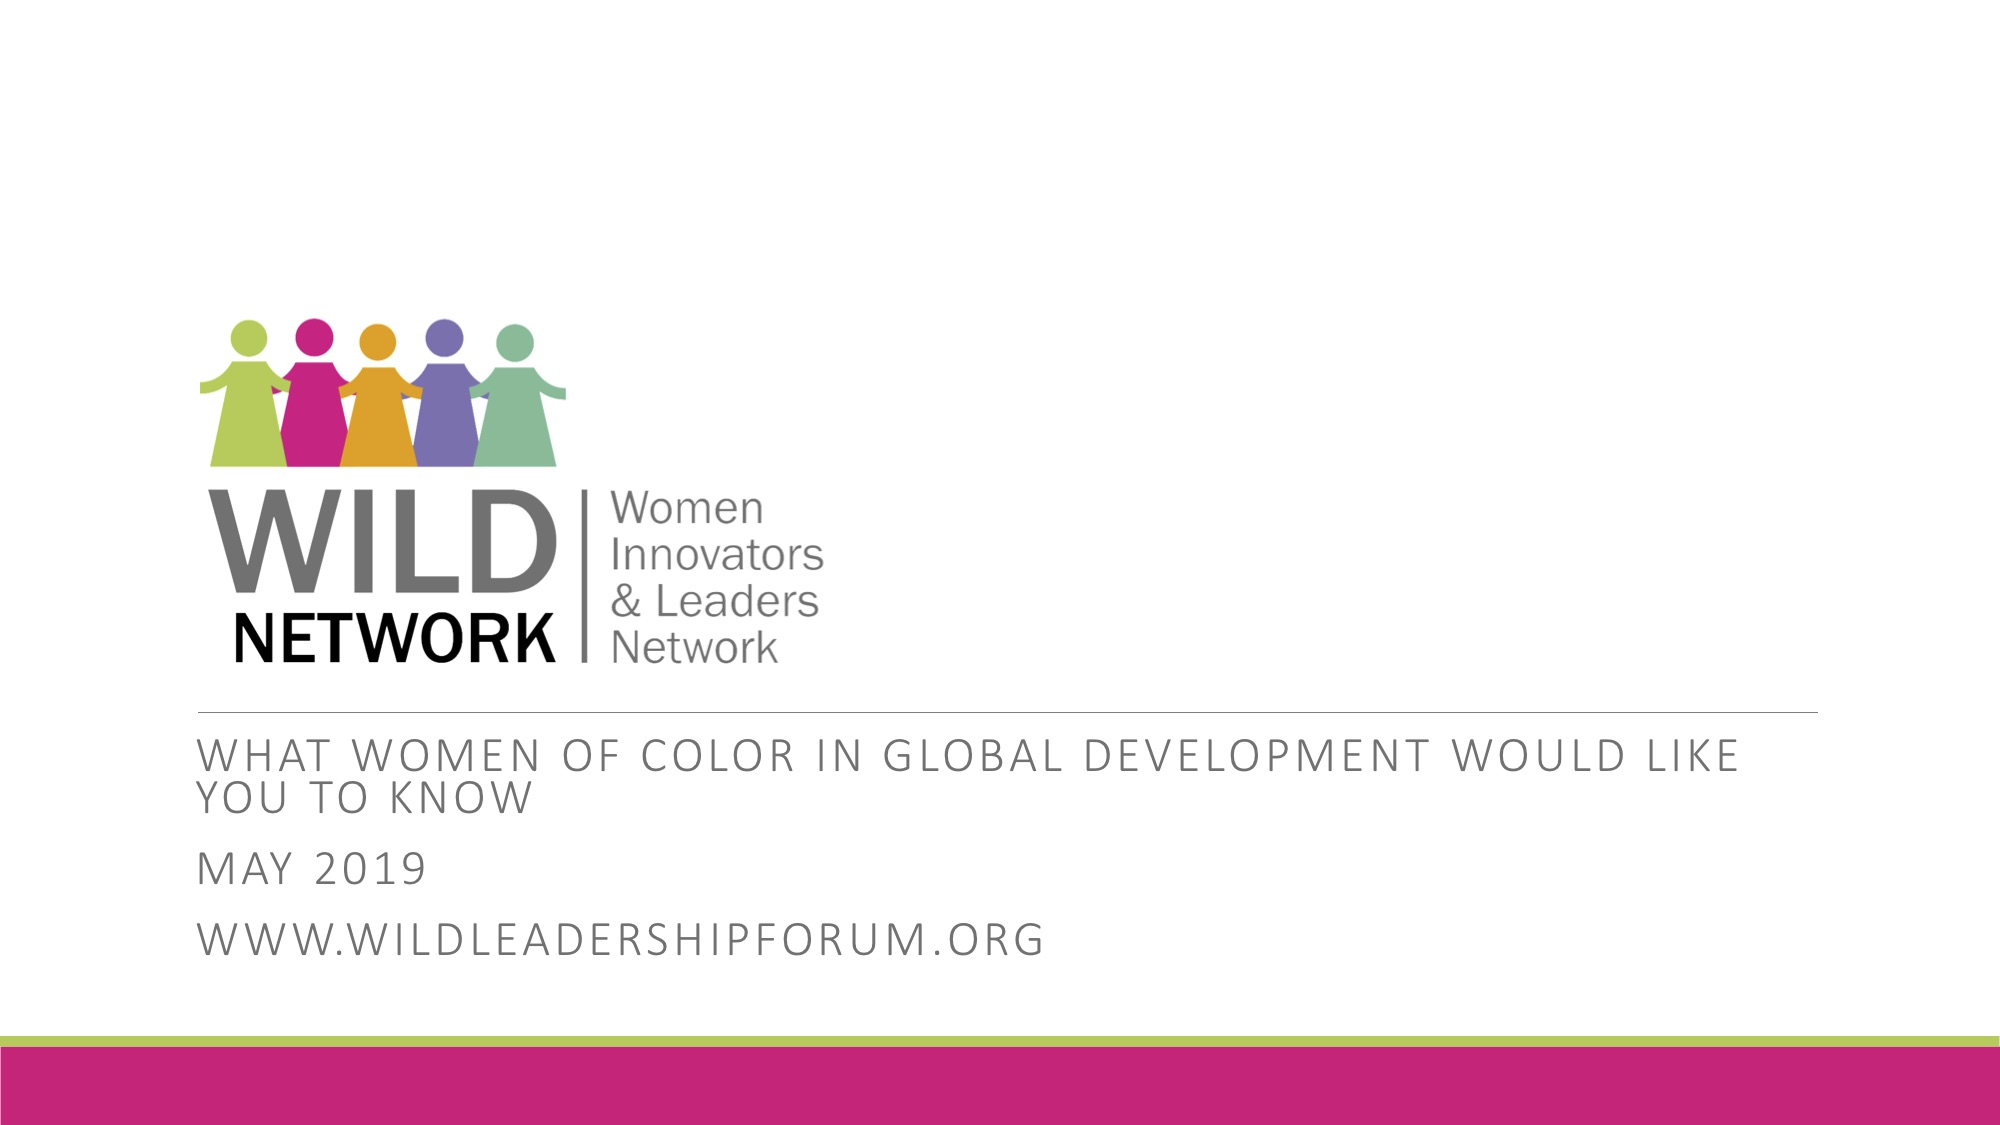 WHAT WOMEN OF COLOR IN GLOBAL DEVELOPMENT WOULD LIKE YOU TO KNOW - The observations in this deck align with a number of other studies looking at the experiences of women of color in the workplace. But because the deck speaks specifically to the global development sector, and the realities that we and our colleagues deal with every day, we at WILD believe it will be especially impactful.